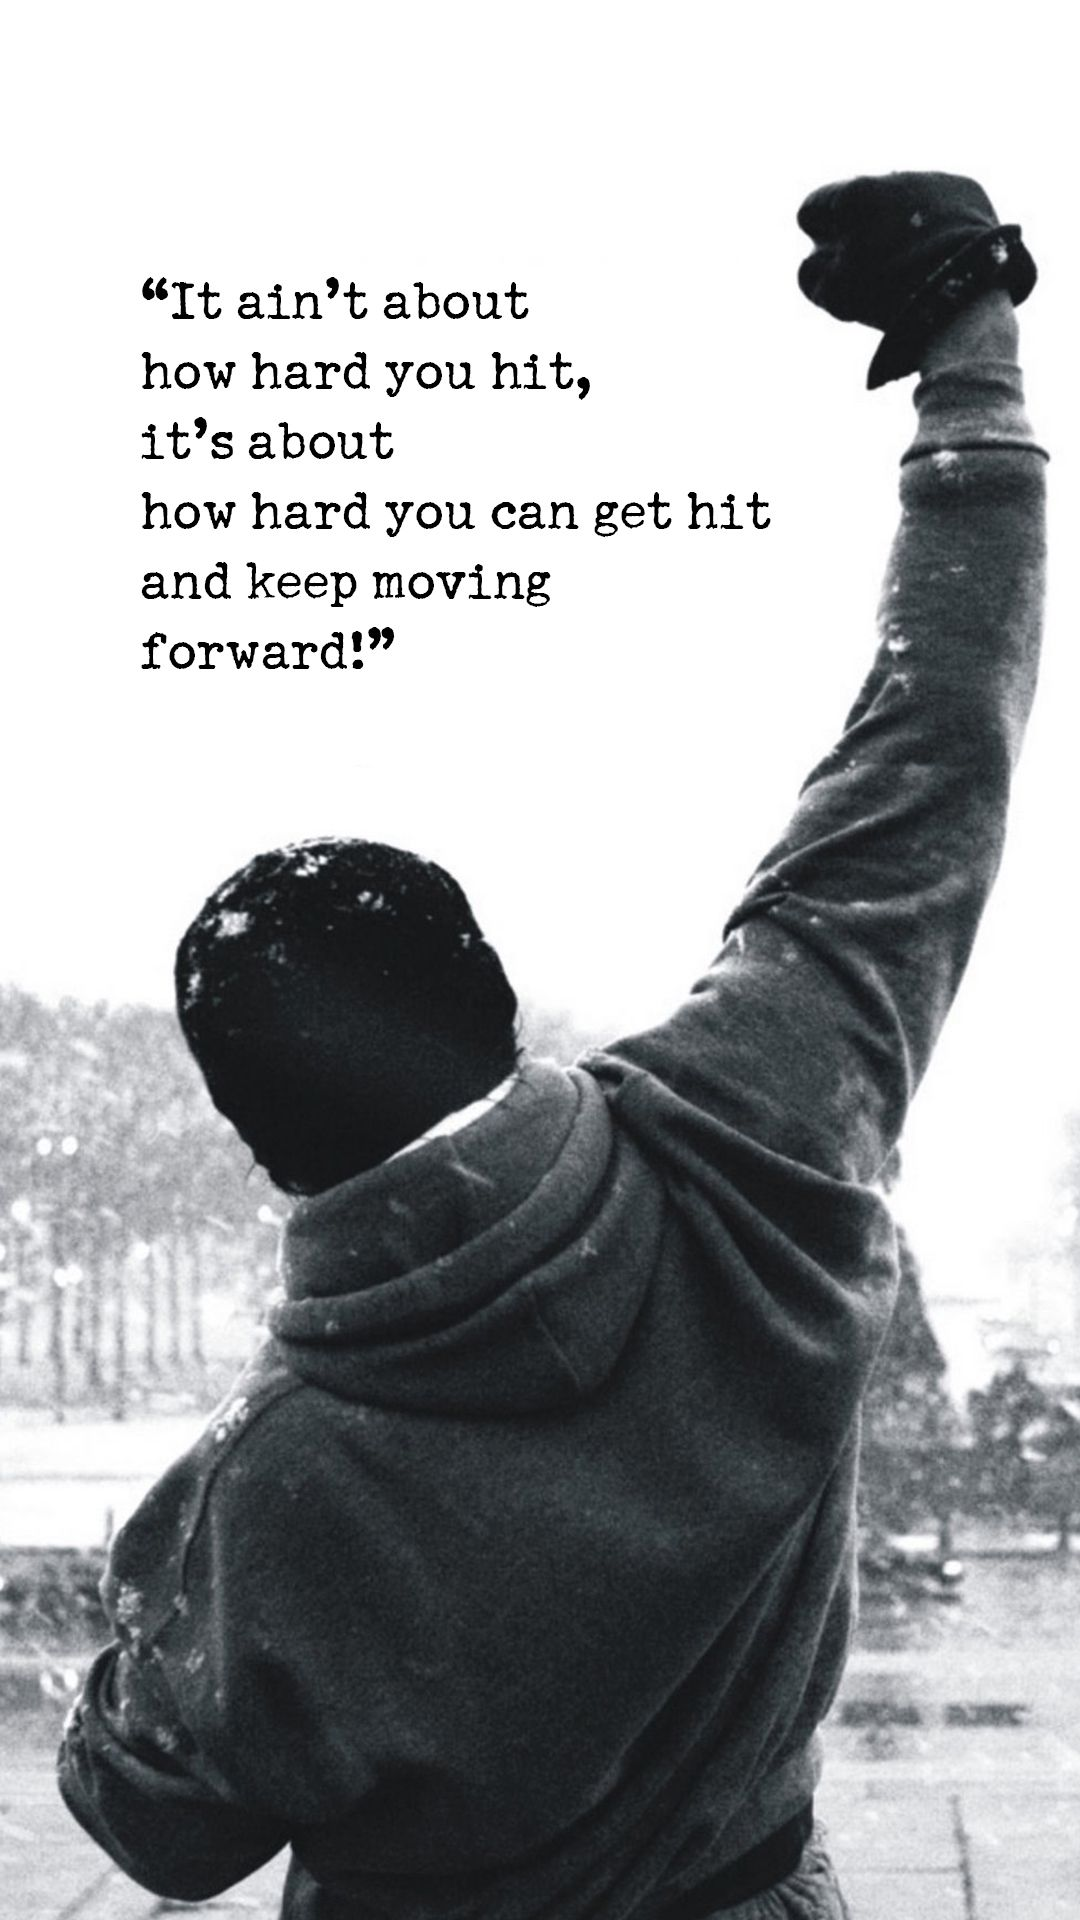 rocky balboa sprüche Rocky Balboa Motivational Words iPhone 6 Plus HD Wallpaper | Rocky  rocky balboa sprüche